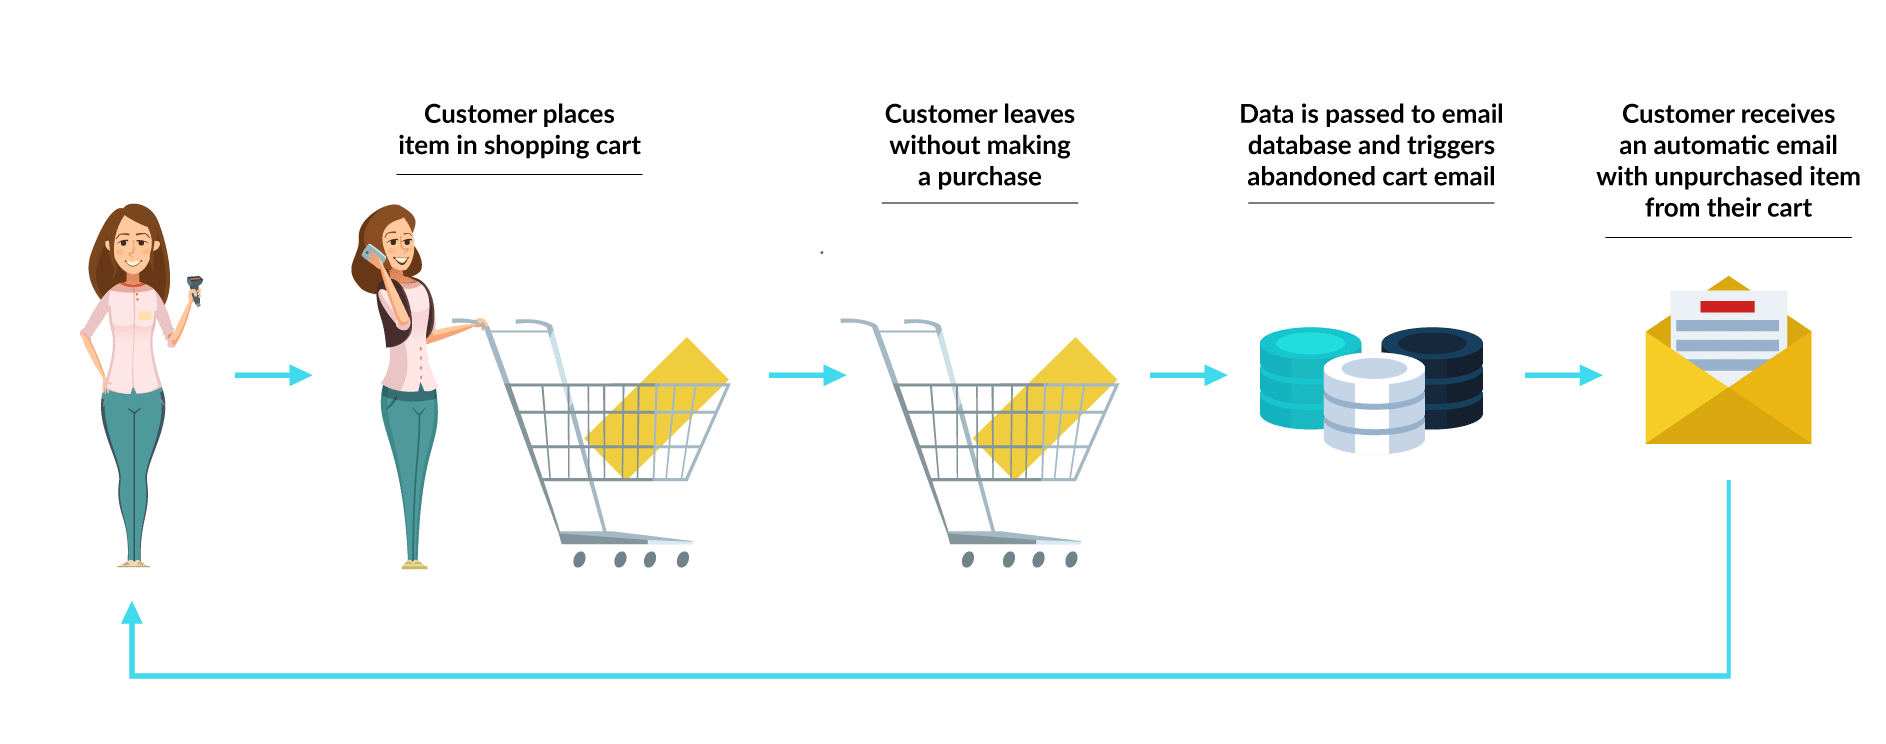 the online buying process